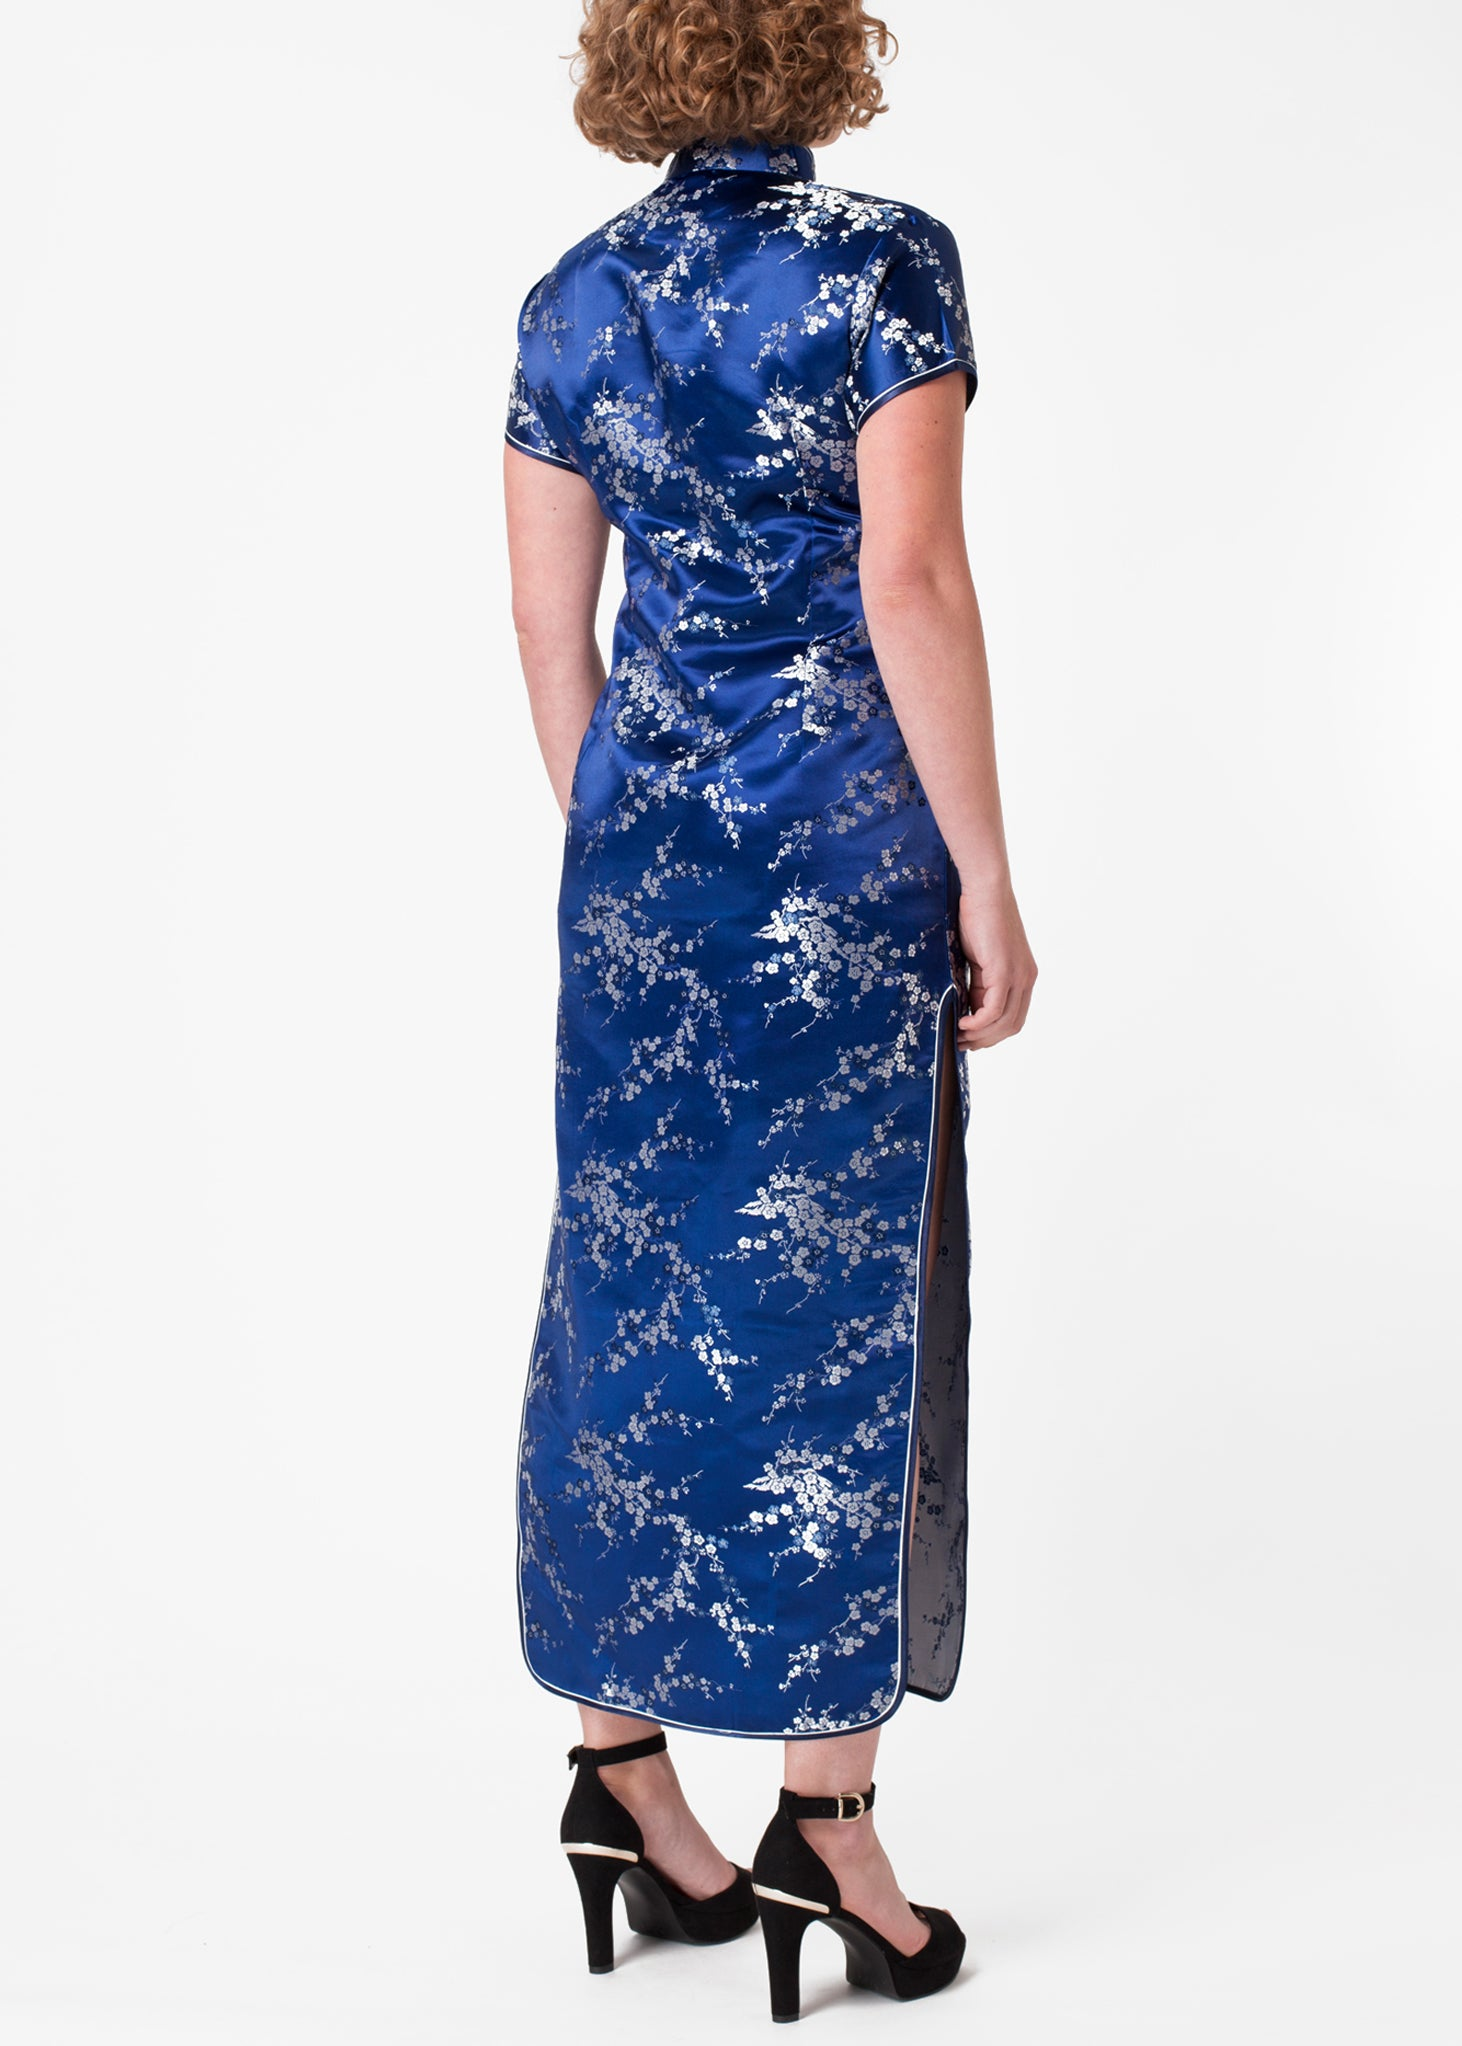 Cherry Blossom Cheongsam (Ankle Length) Blue